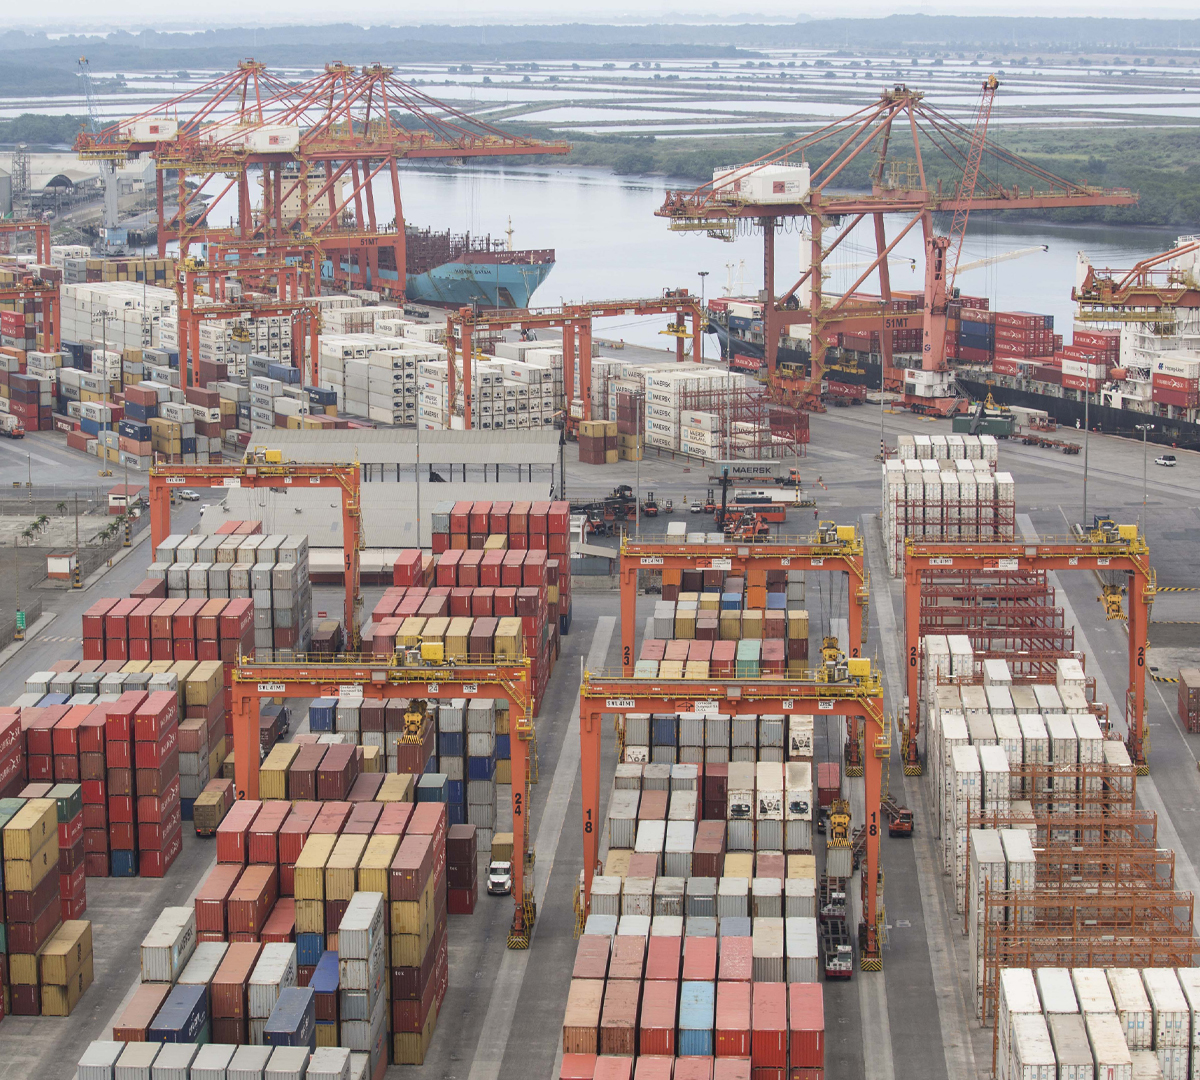 ICTSI will invest $18 million in the Port of Guayquil